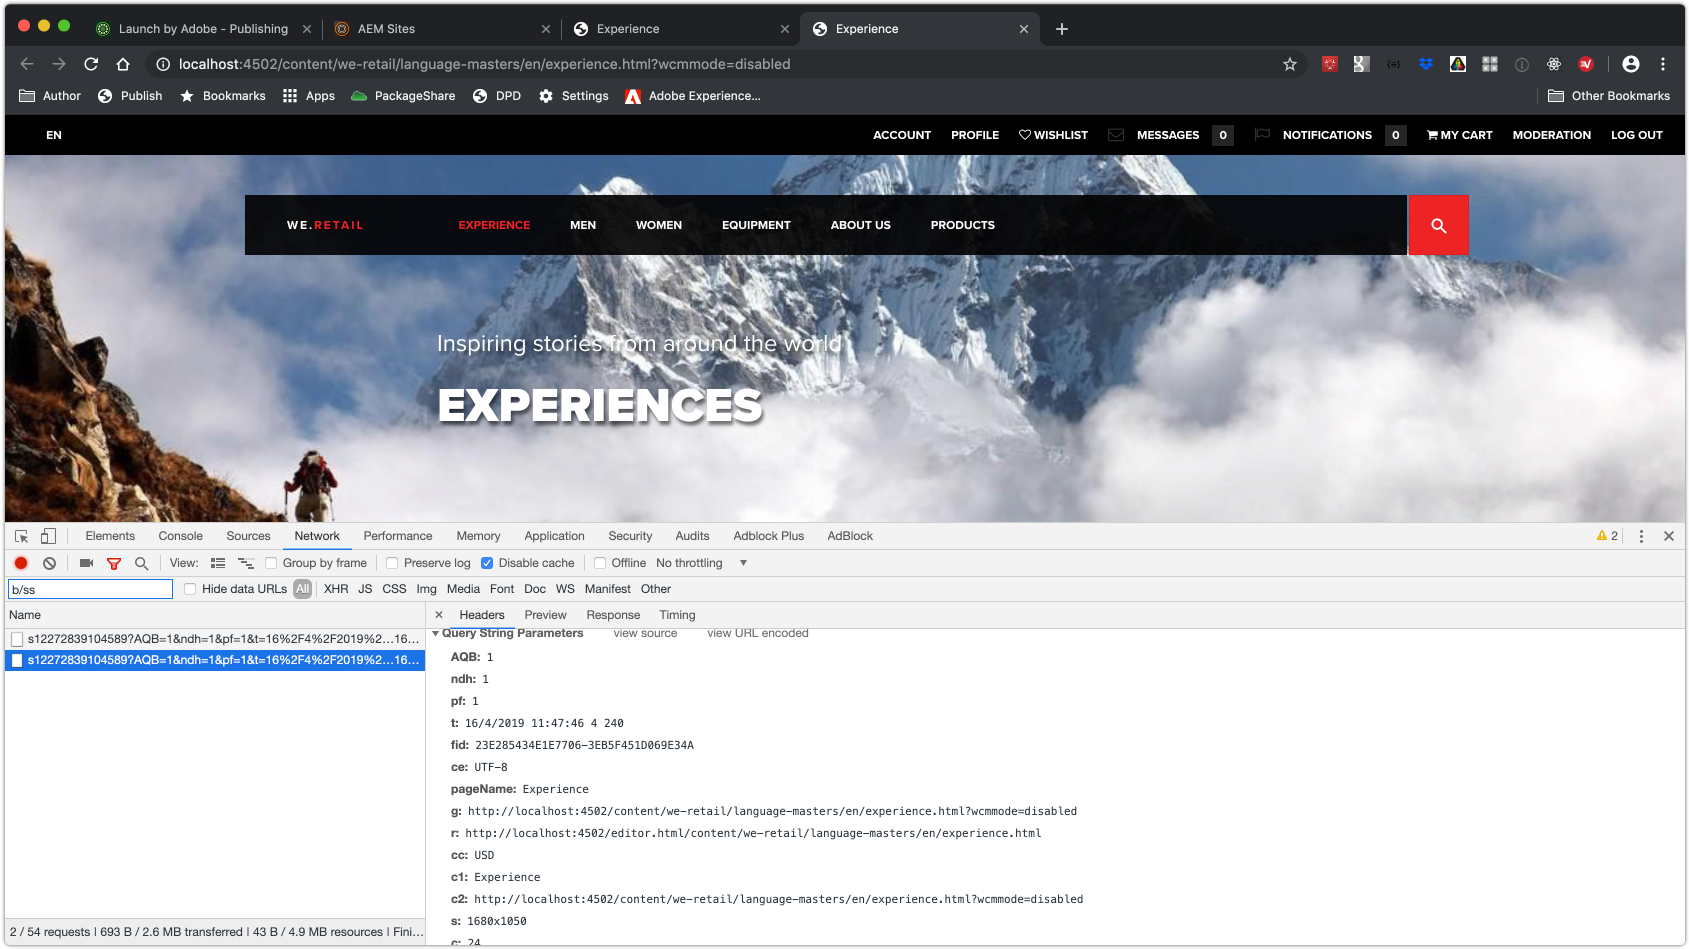 Adobe Experience Manager Integration with Adobe Analytics